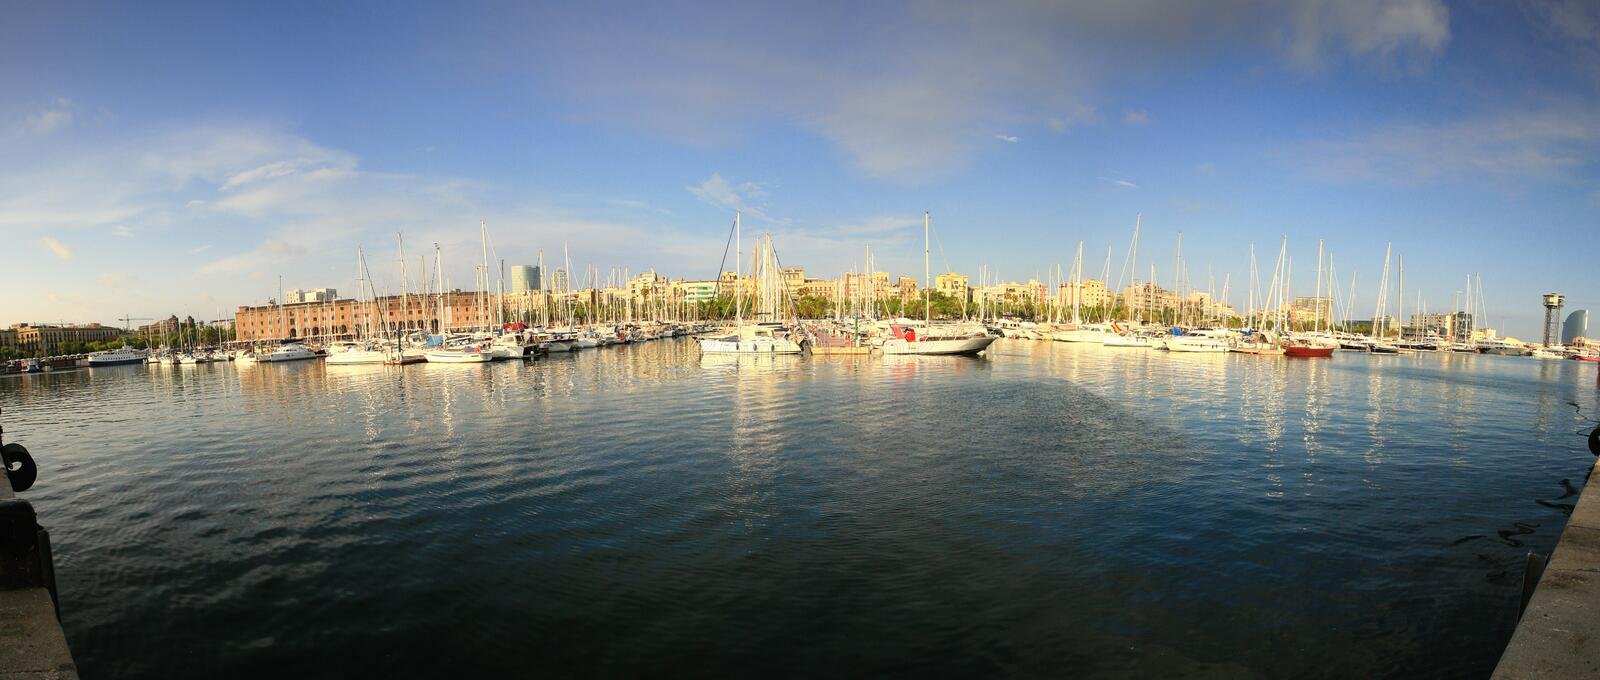 De Haven van Barcelona stock foto